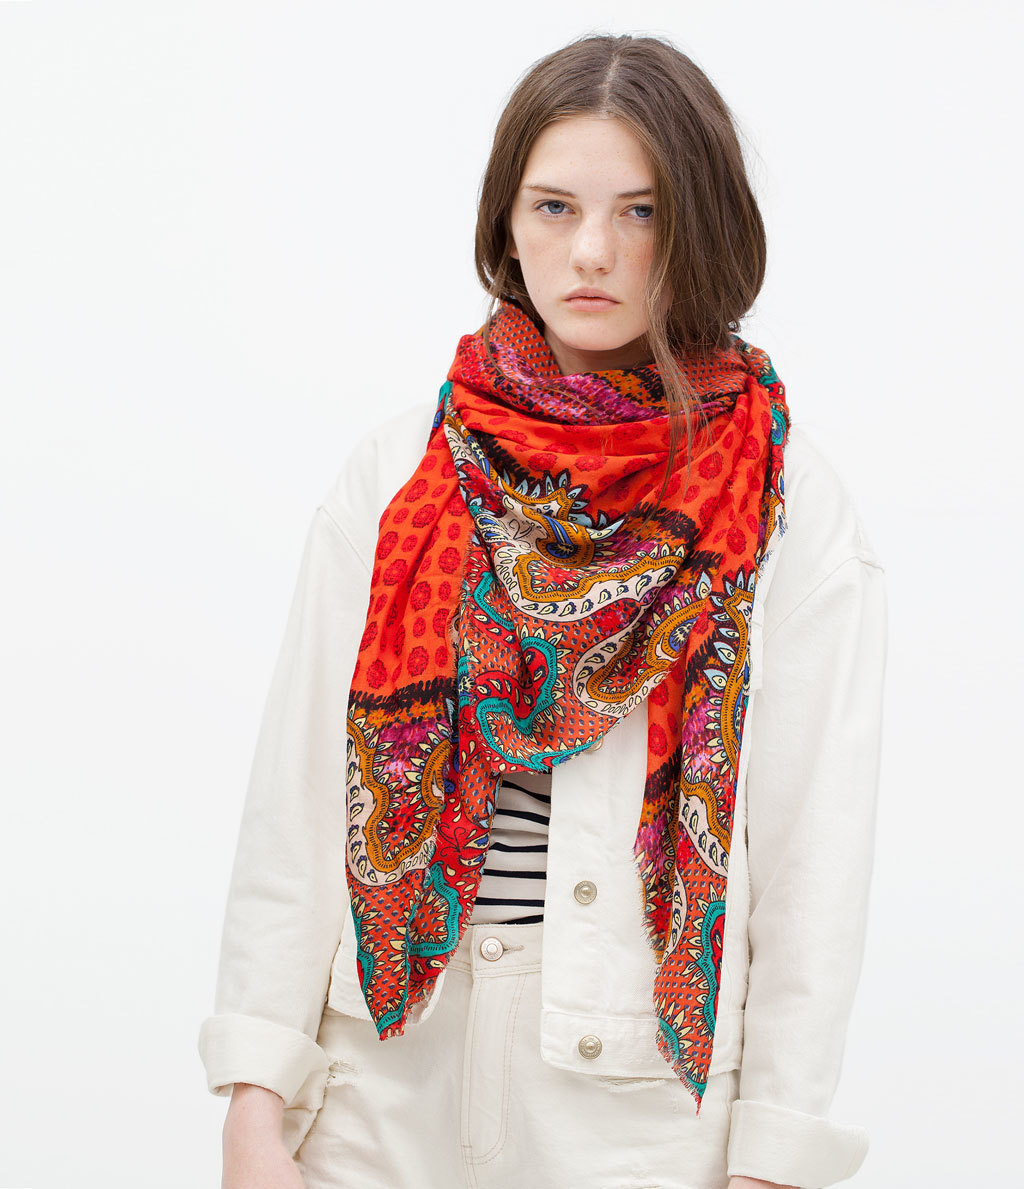 Boho Paisley Scarf - predominant colour: true red; secondary colour: black; occasions: casual, creative work; type of pattern: heavy; style: square; size: large; material: fabric; pattern: paisley; season: s/s 2015; multicoloured: multicoloured; wardrobe: highlight